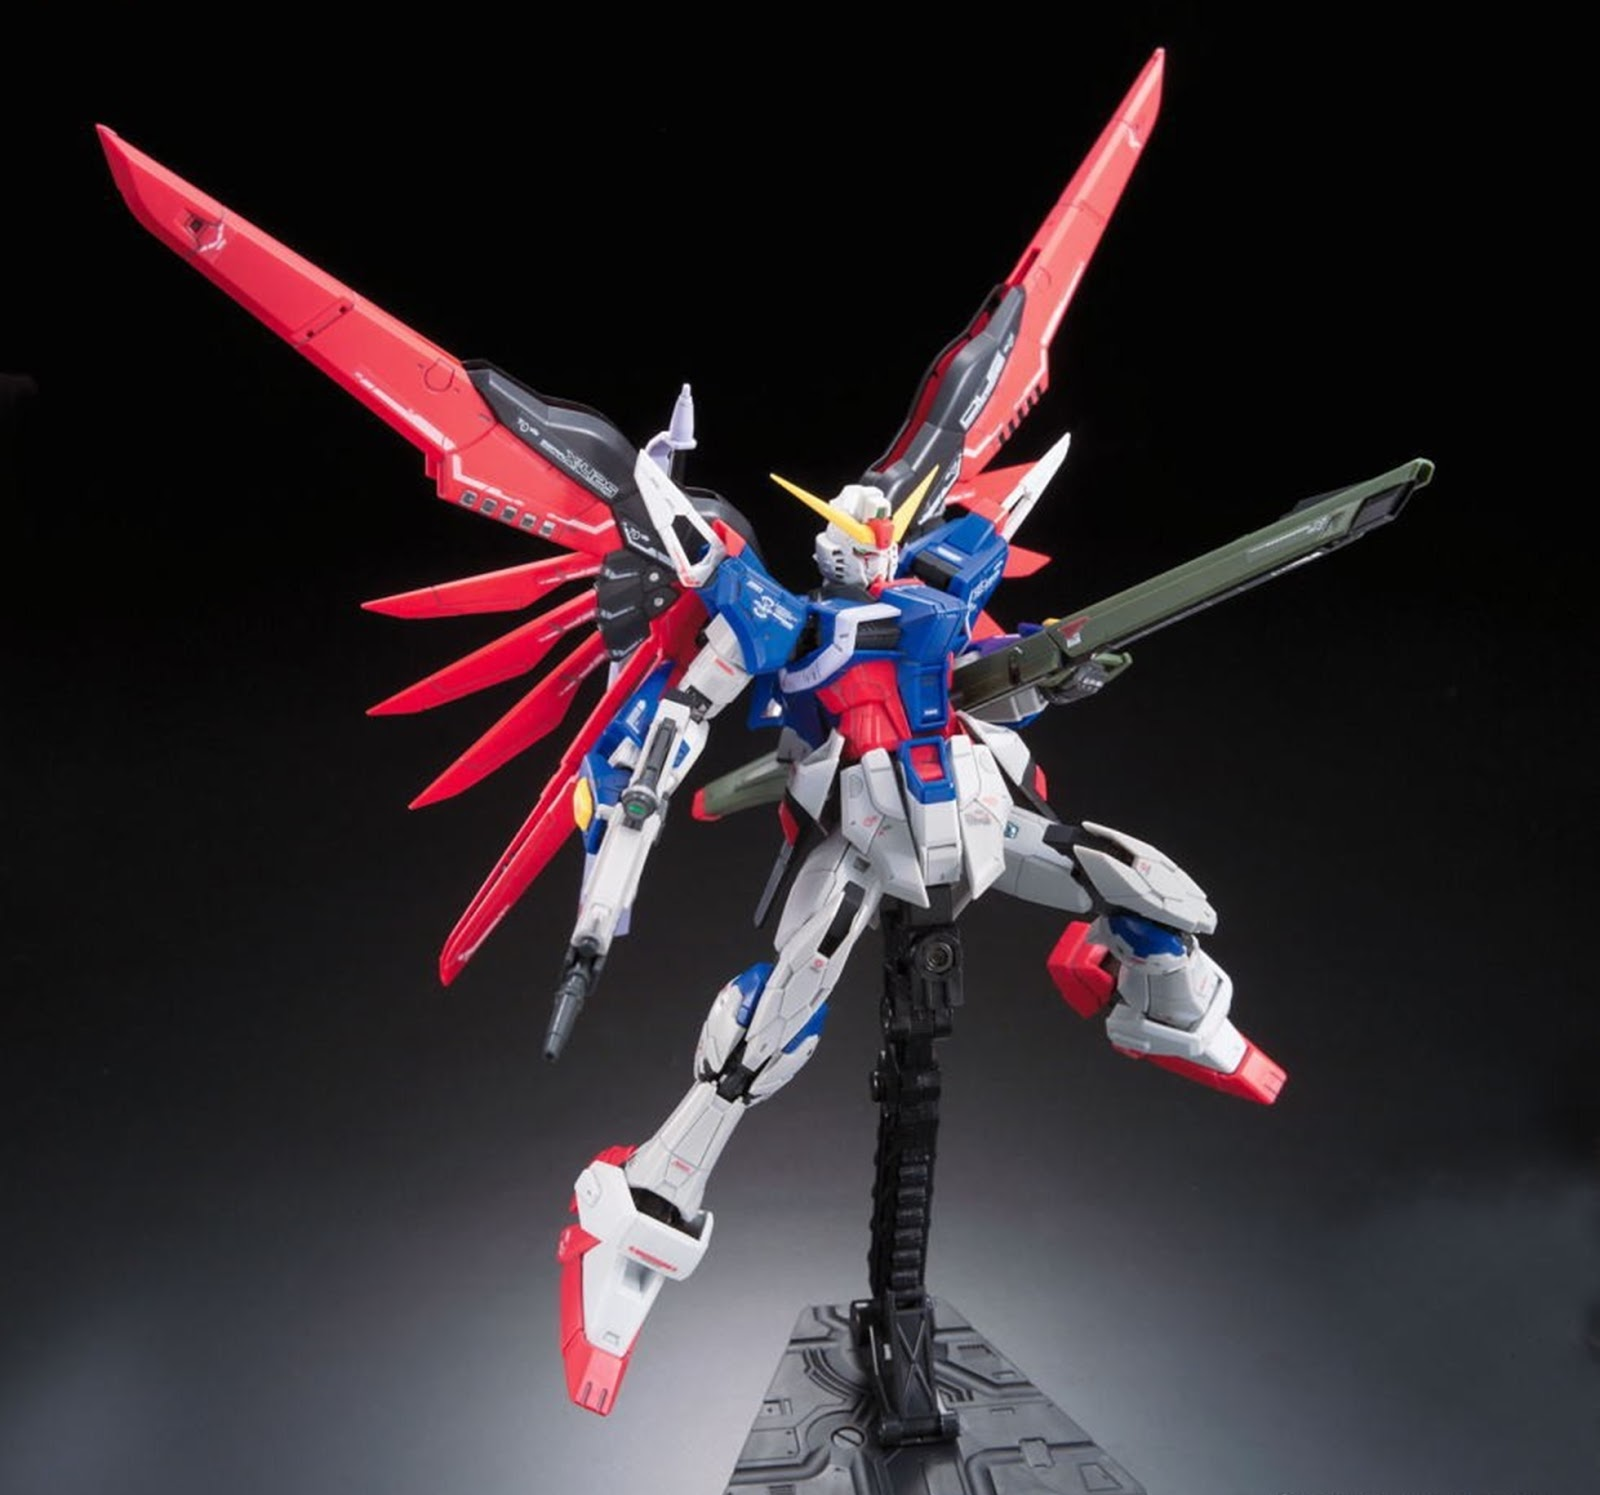 destiny gundam rg - photo #1